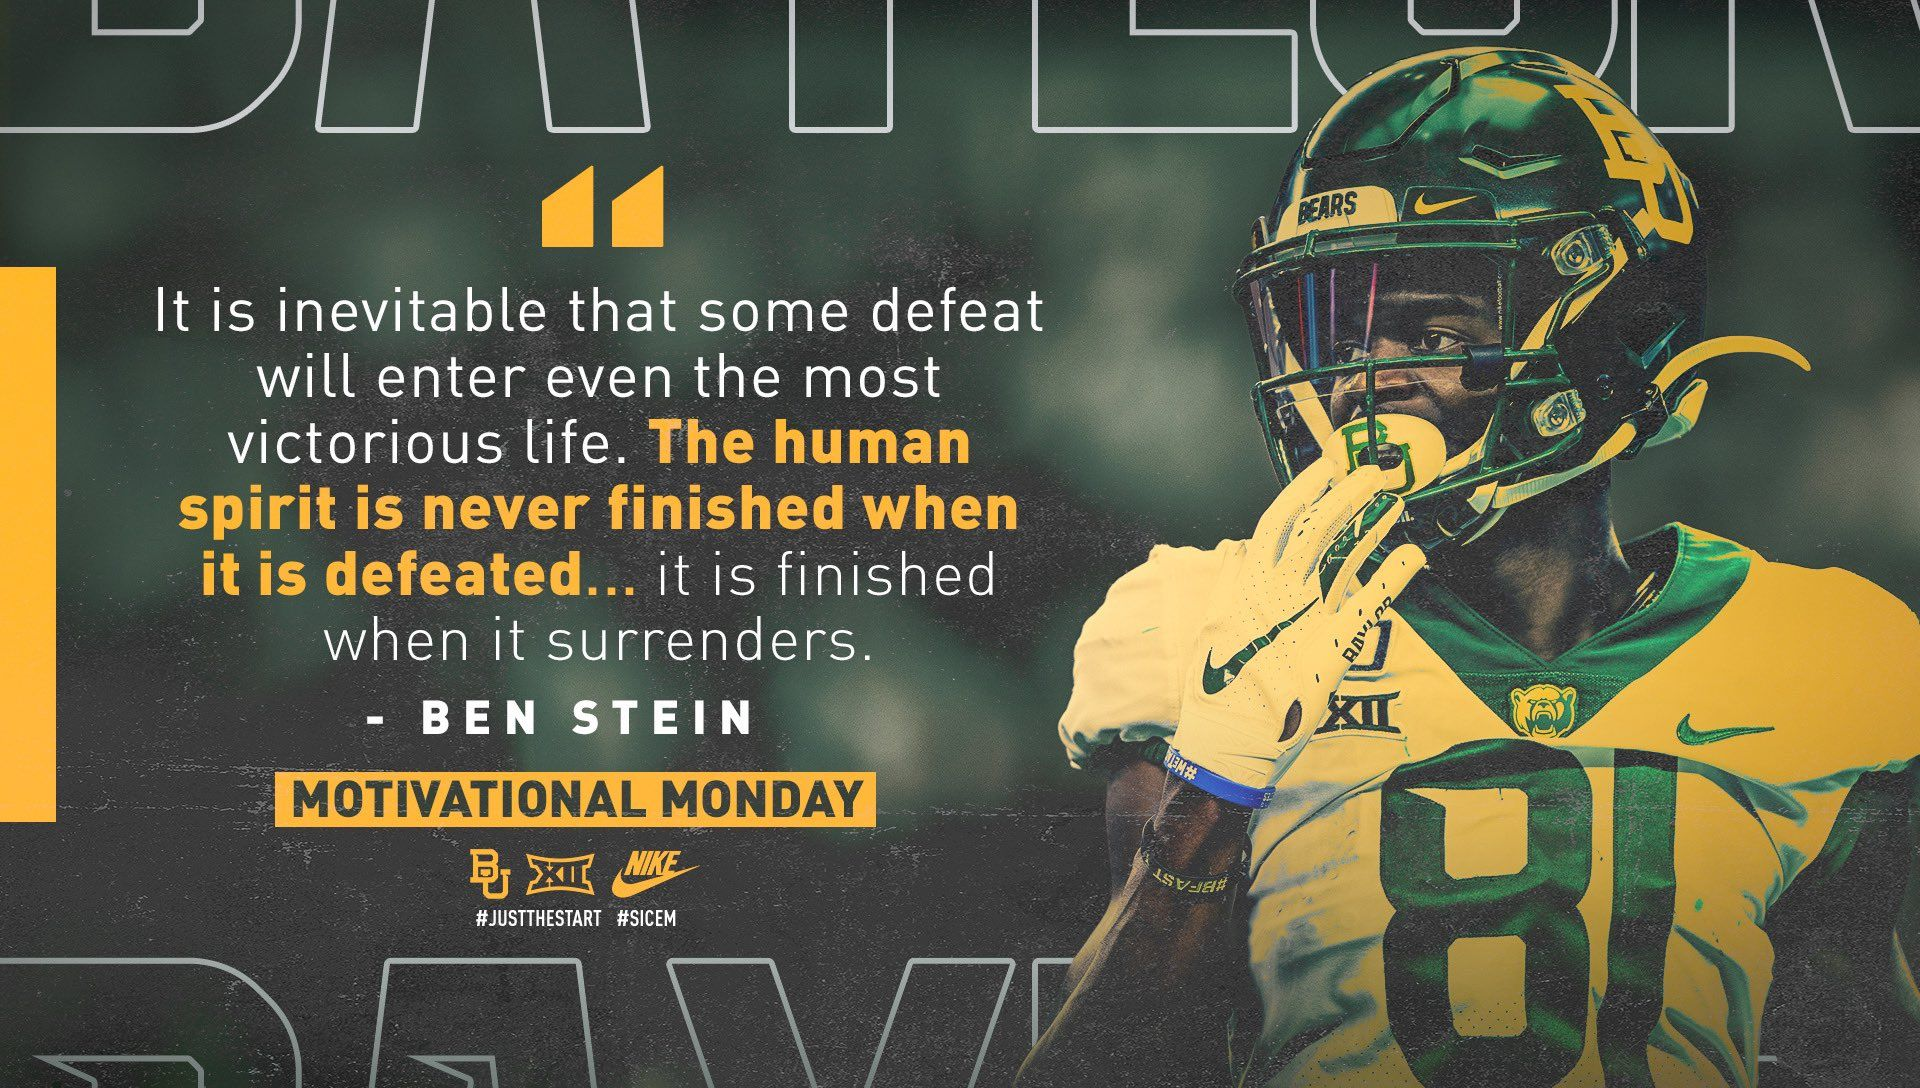 Baylor In 2020 Sports Graphic Design Graphic Quotes Sports Design Inspiration